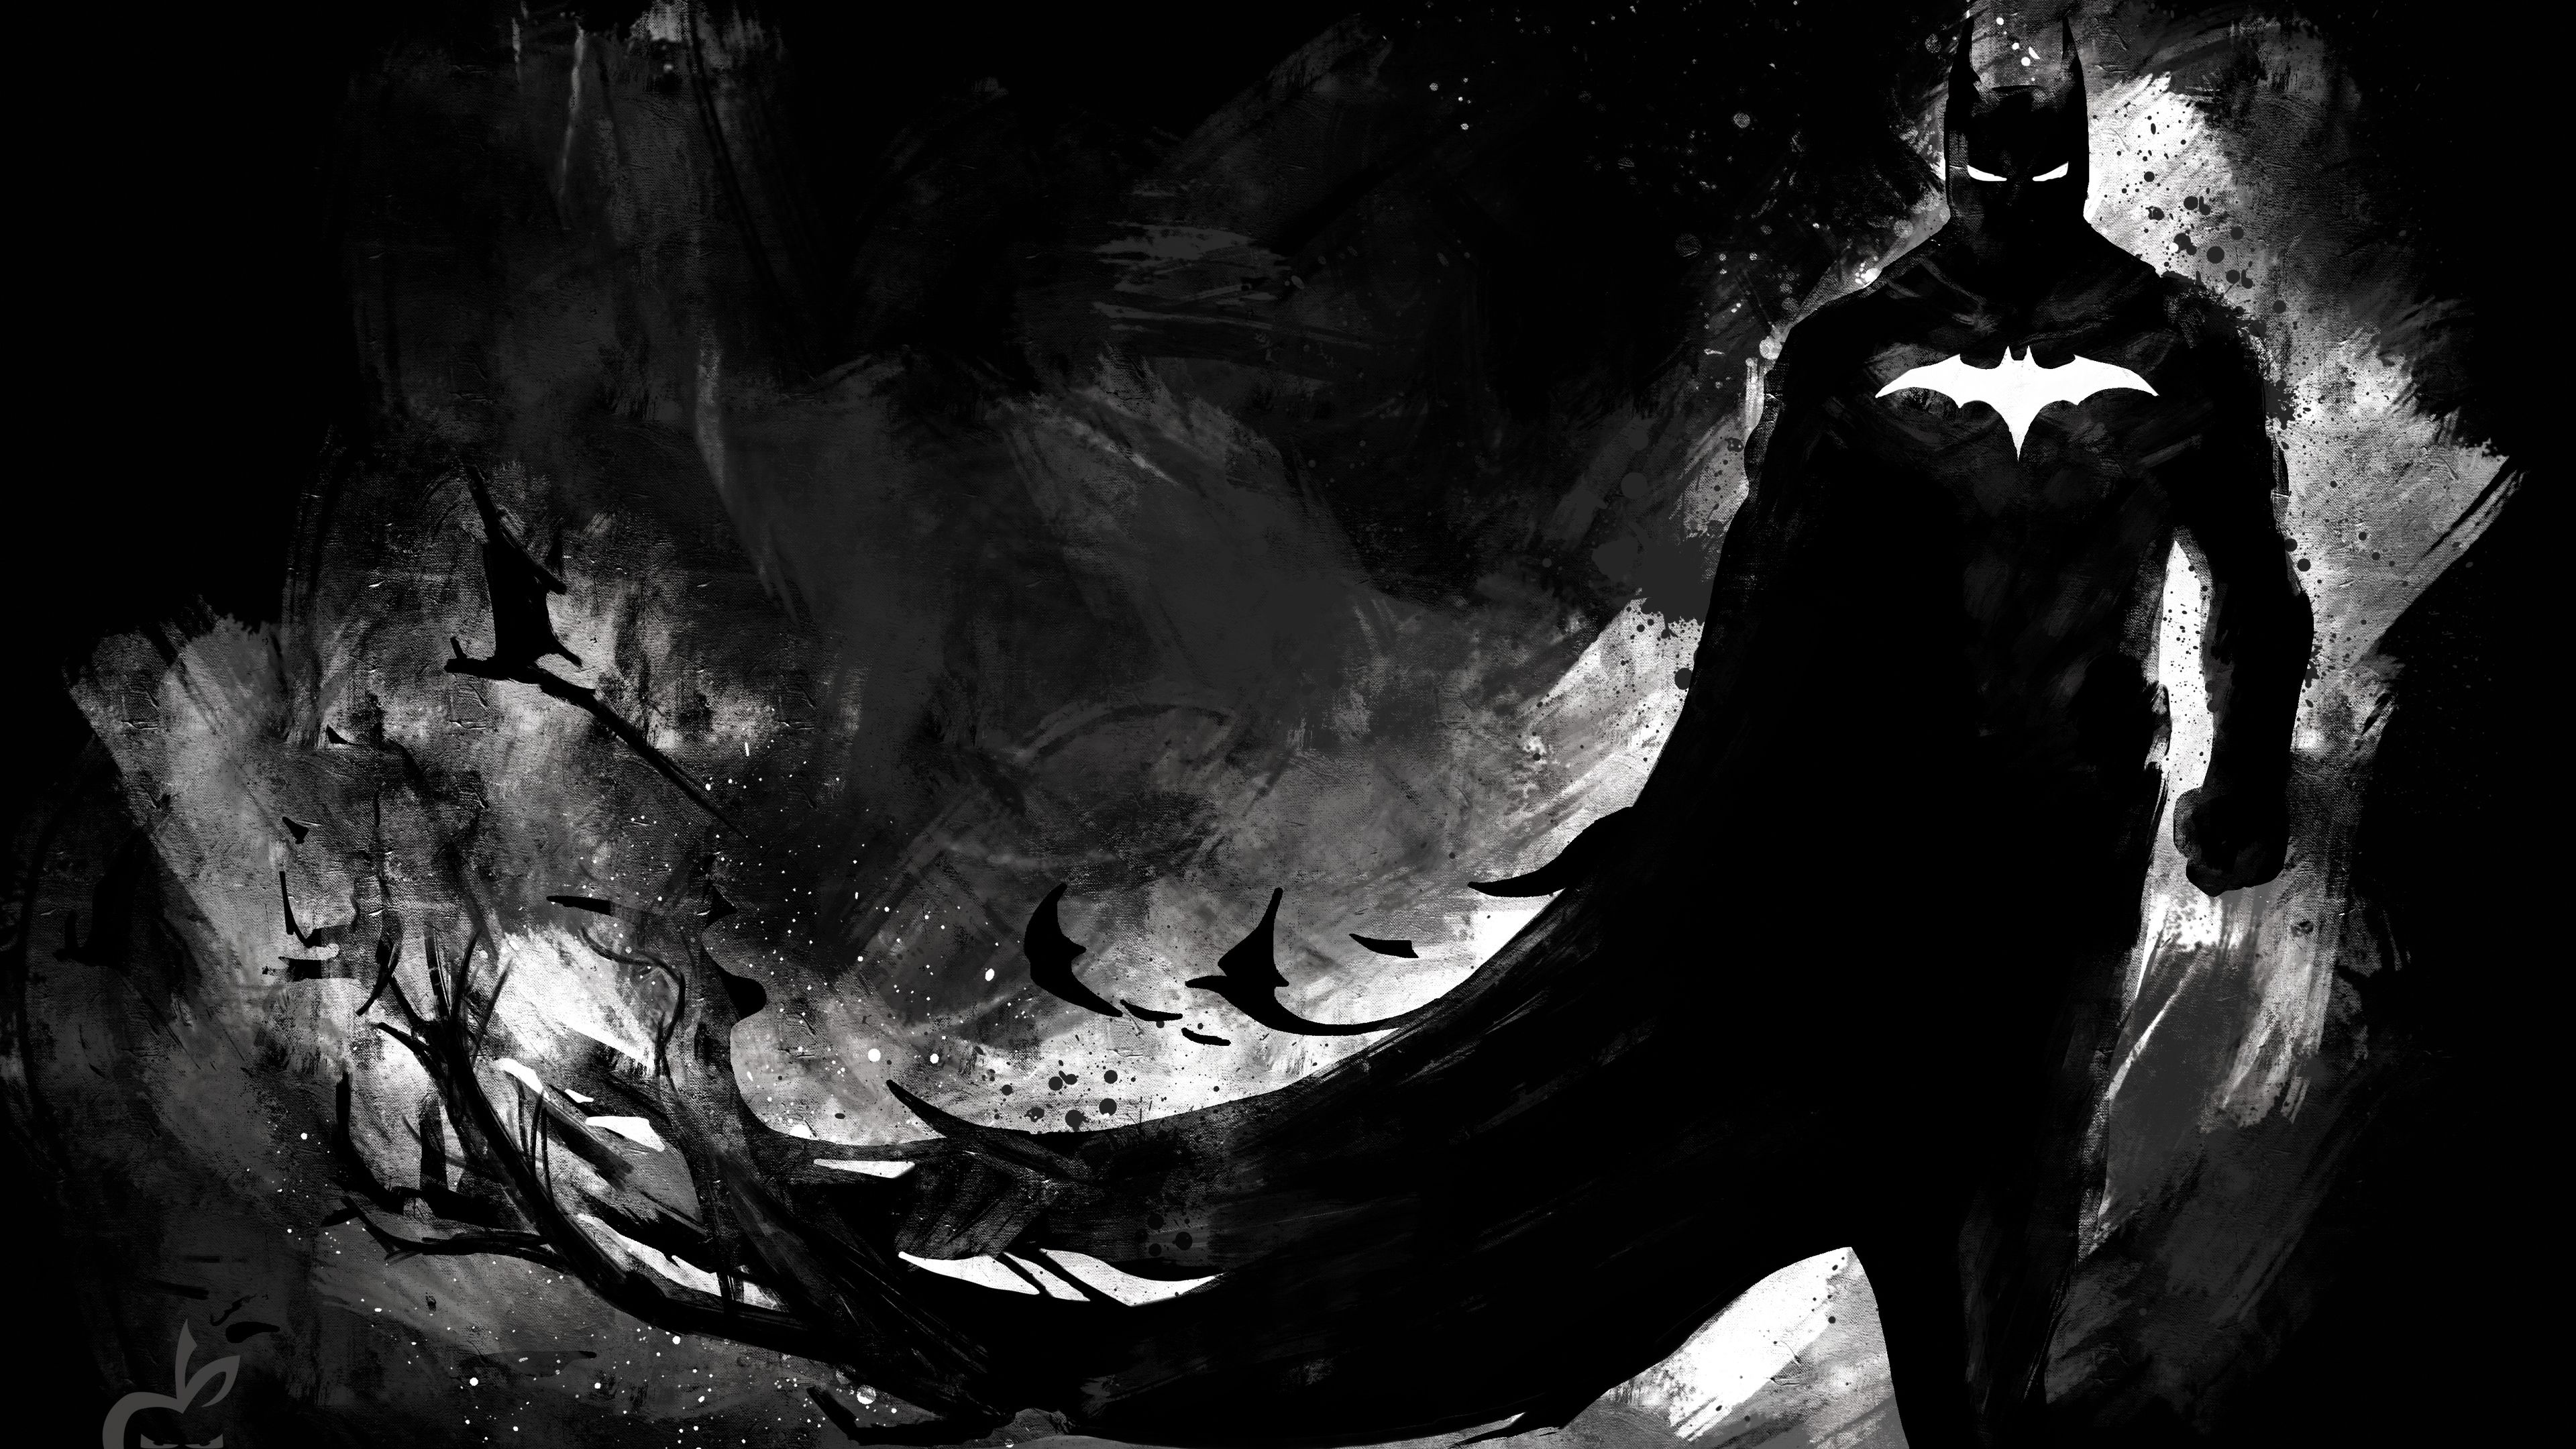 Dark Knight Monochrome 4k Superheroes Wallpapers Hd Wallpapers Digital Art Wallpapers Batman Wallpapers Art Batman Wallpaper Batman Fan Art Batman Painting